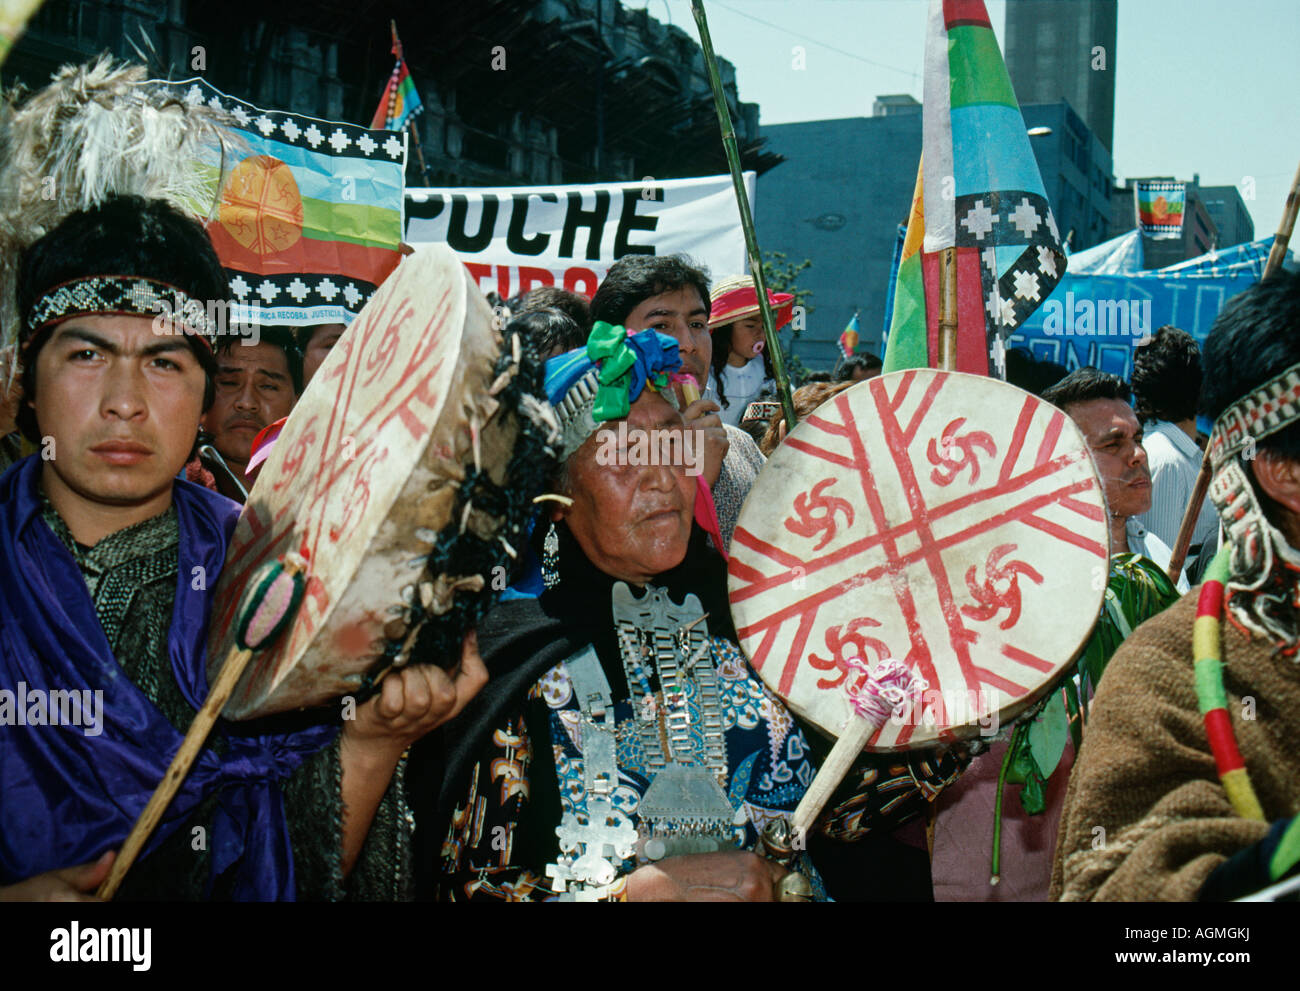 Chile, Santiago, Mapuche Indians demonstrating - Stock Image